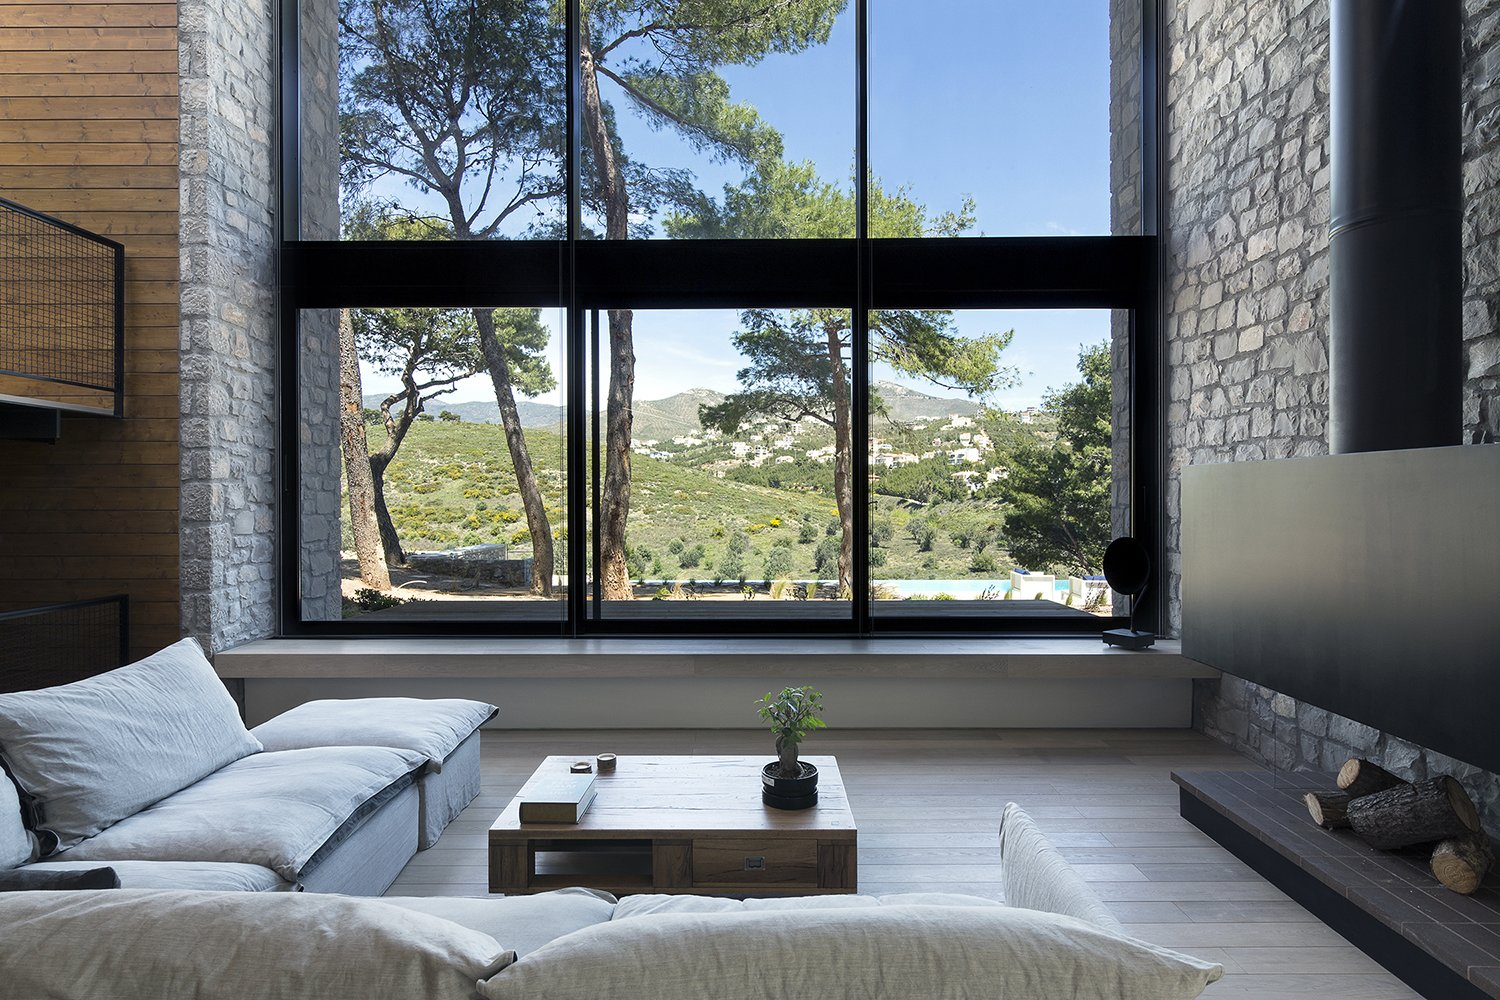 Living Room The facade opens up to the view of the pines trees concealing the boundary between the interior of the house and its surrounding environment   The Wedge House